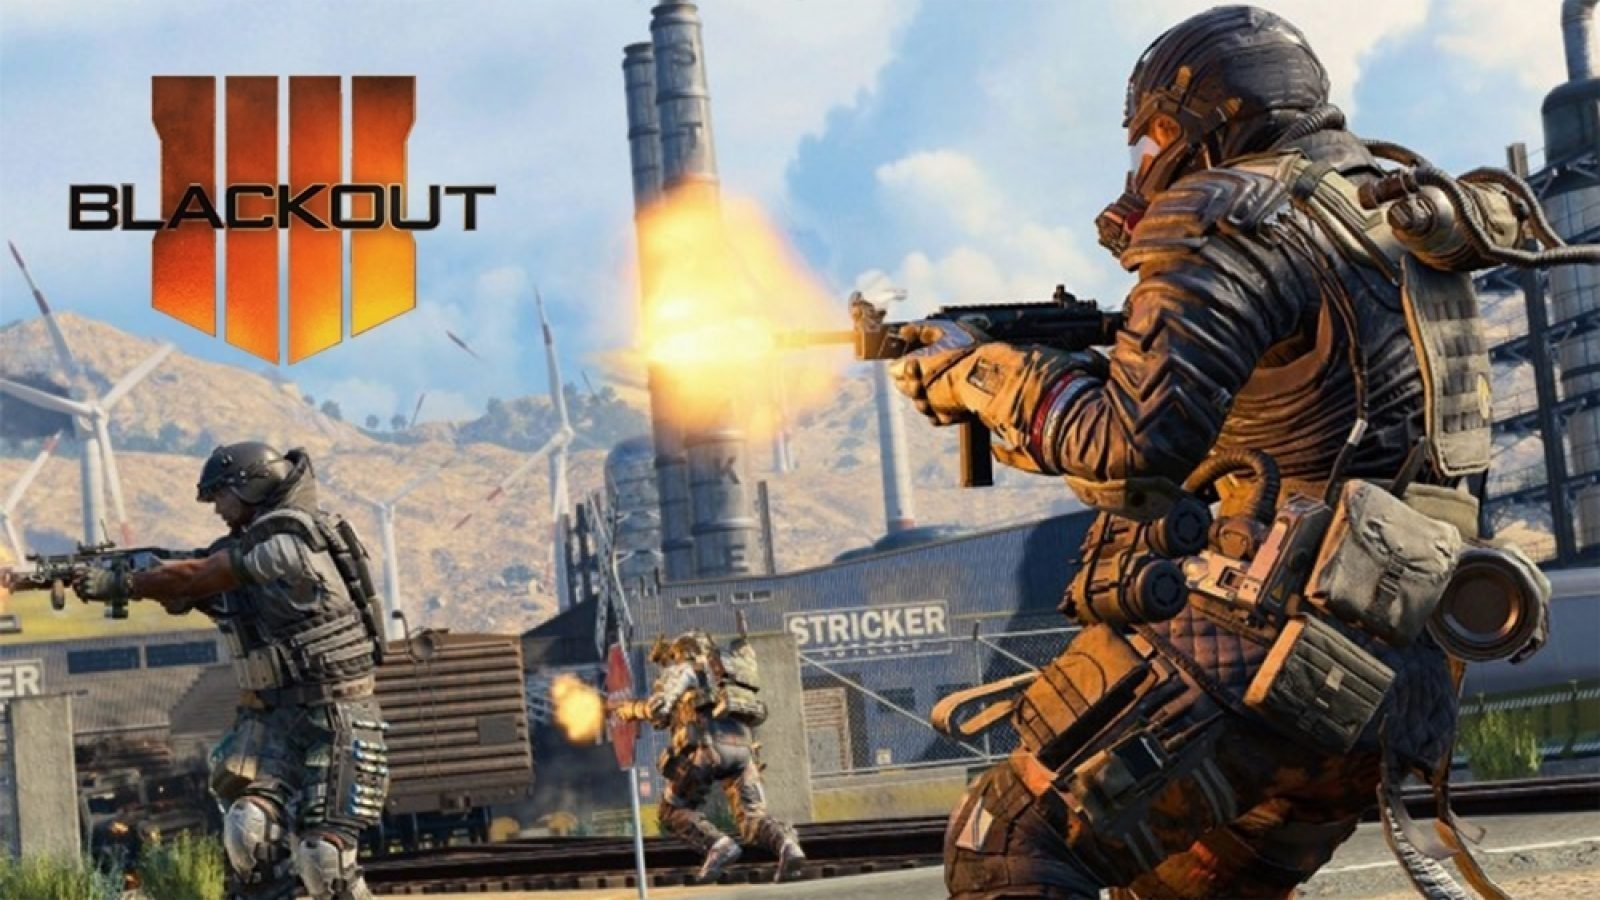 You can check out CoD: Black Ops 4's Blackout mode for free Header Image